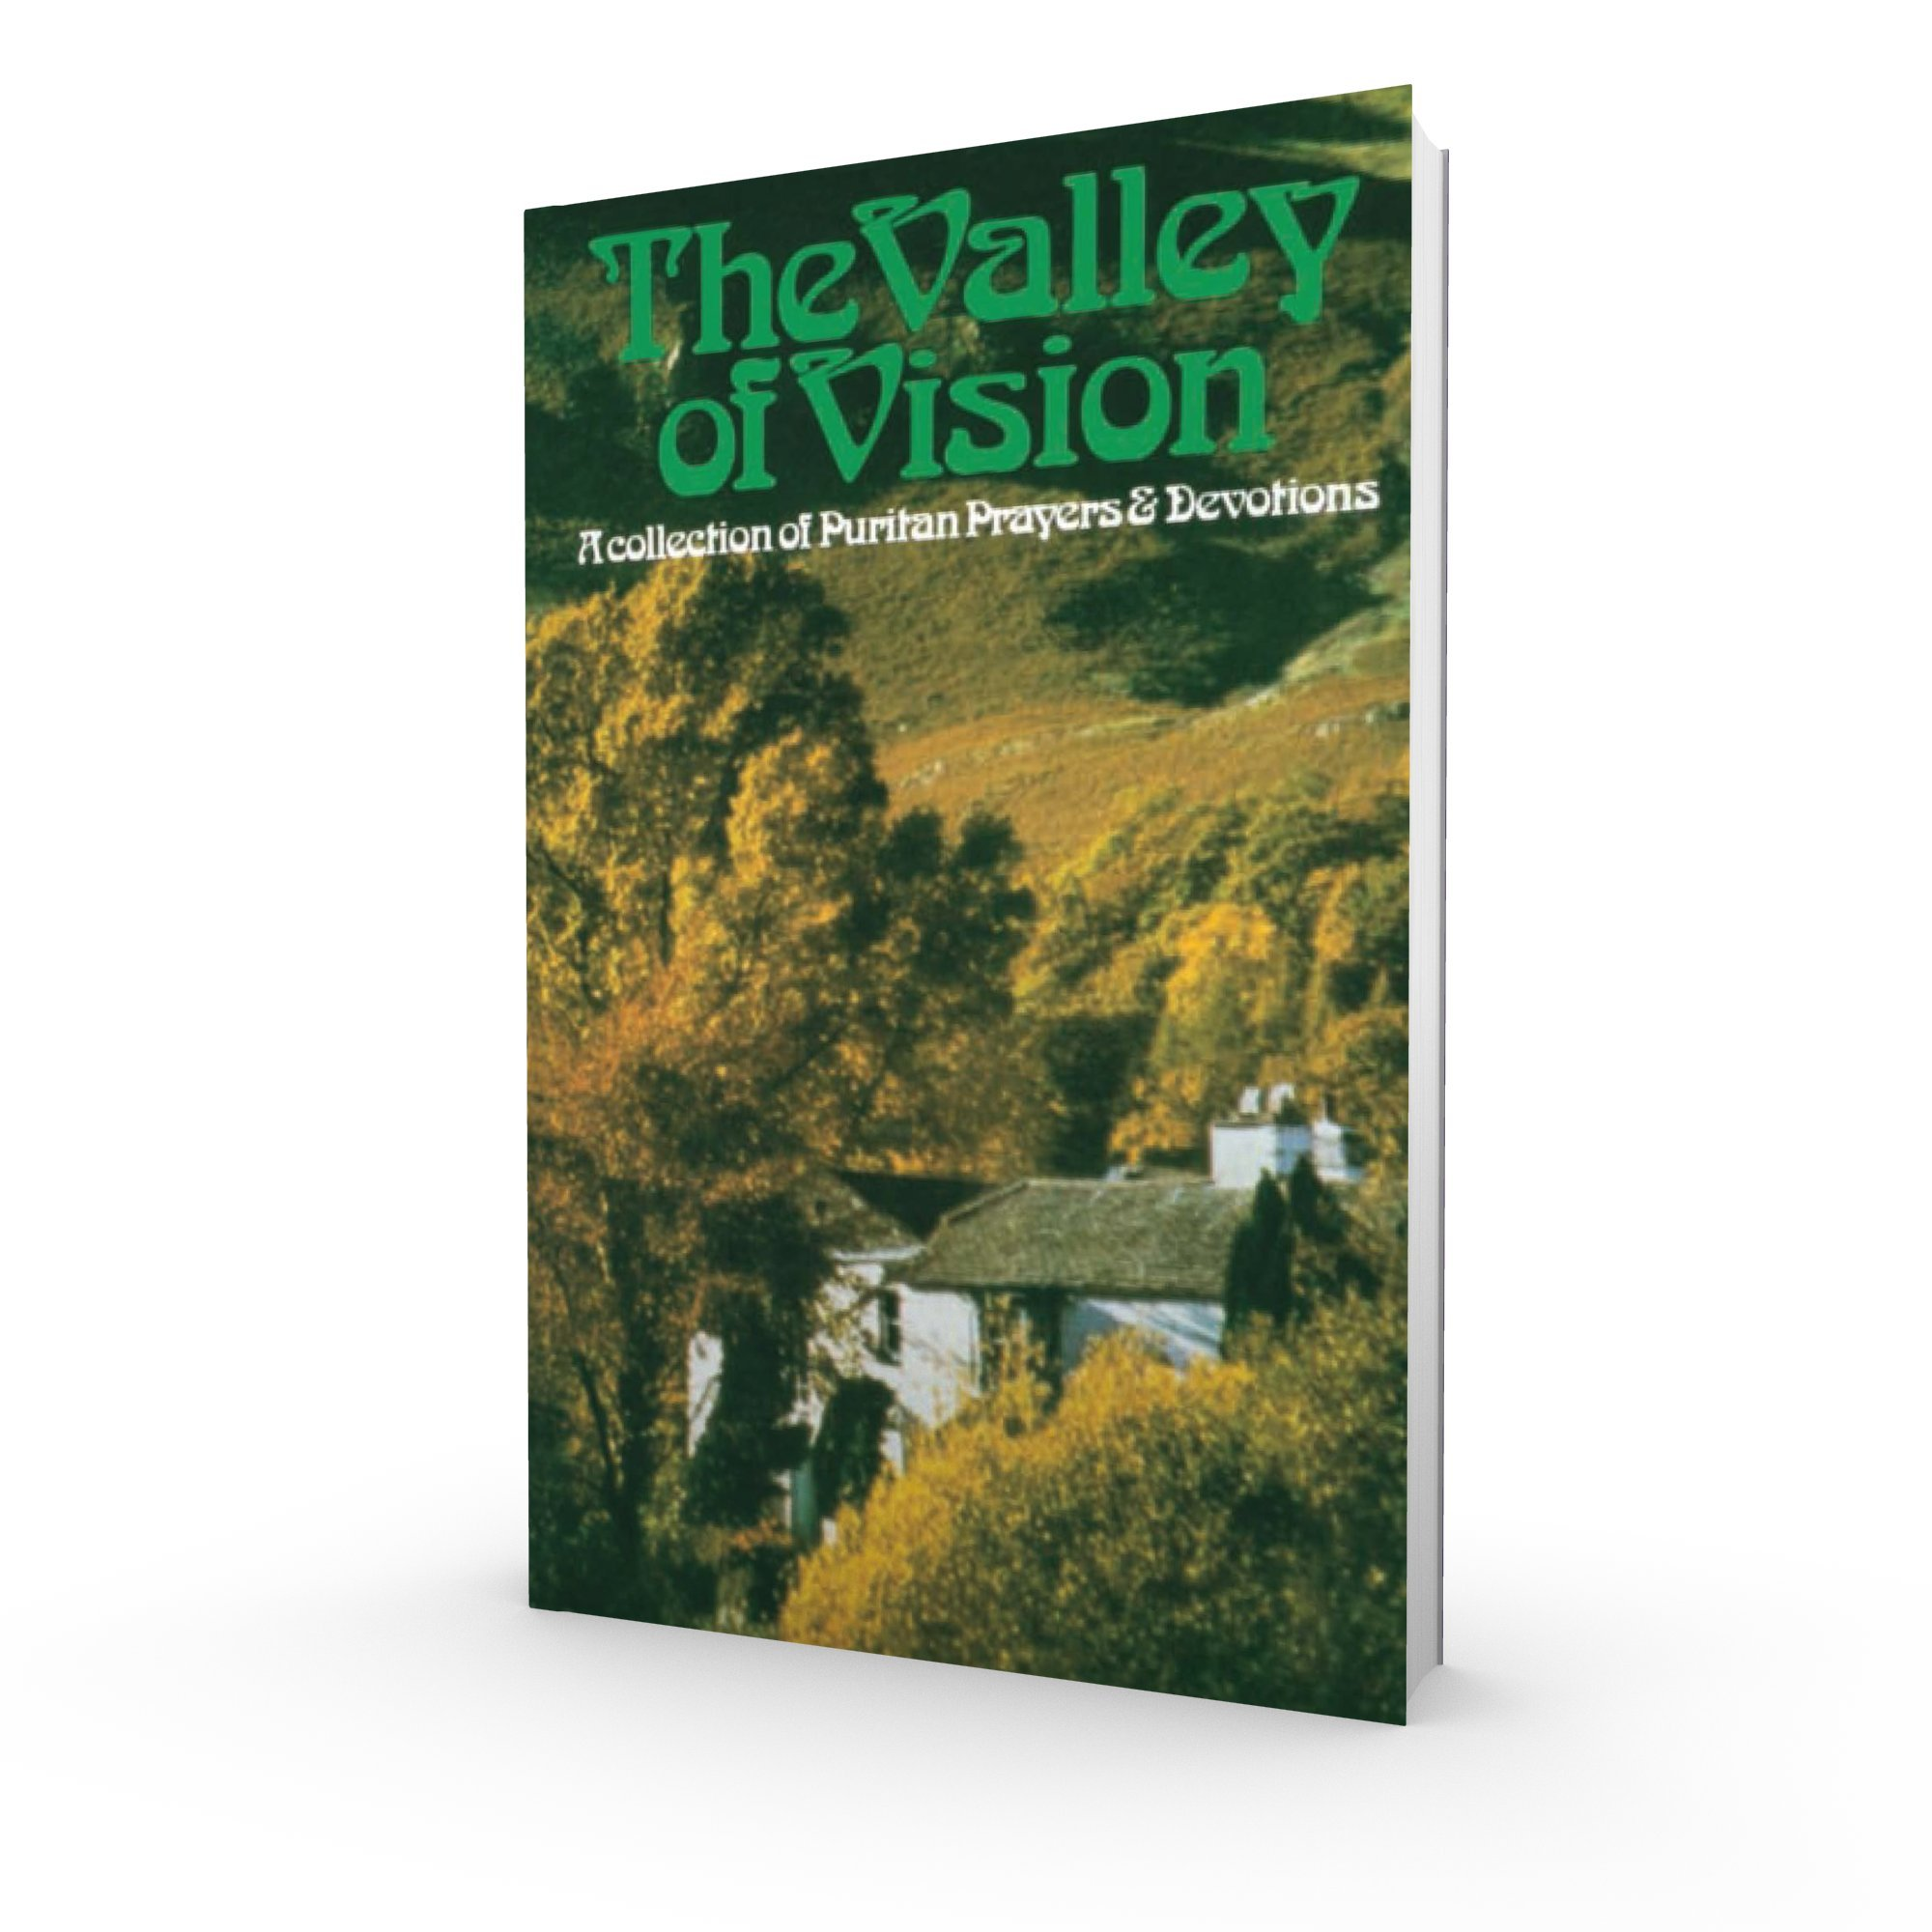 The valley of vision a collection of puritan prayers devotions the valley of vision a collection of puritan prayers devotions arthur bennett 9780851512280 amazon books fandeluxe Images